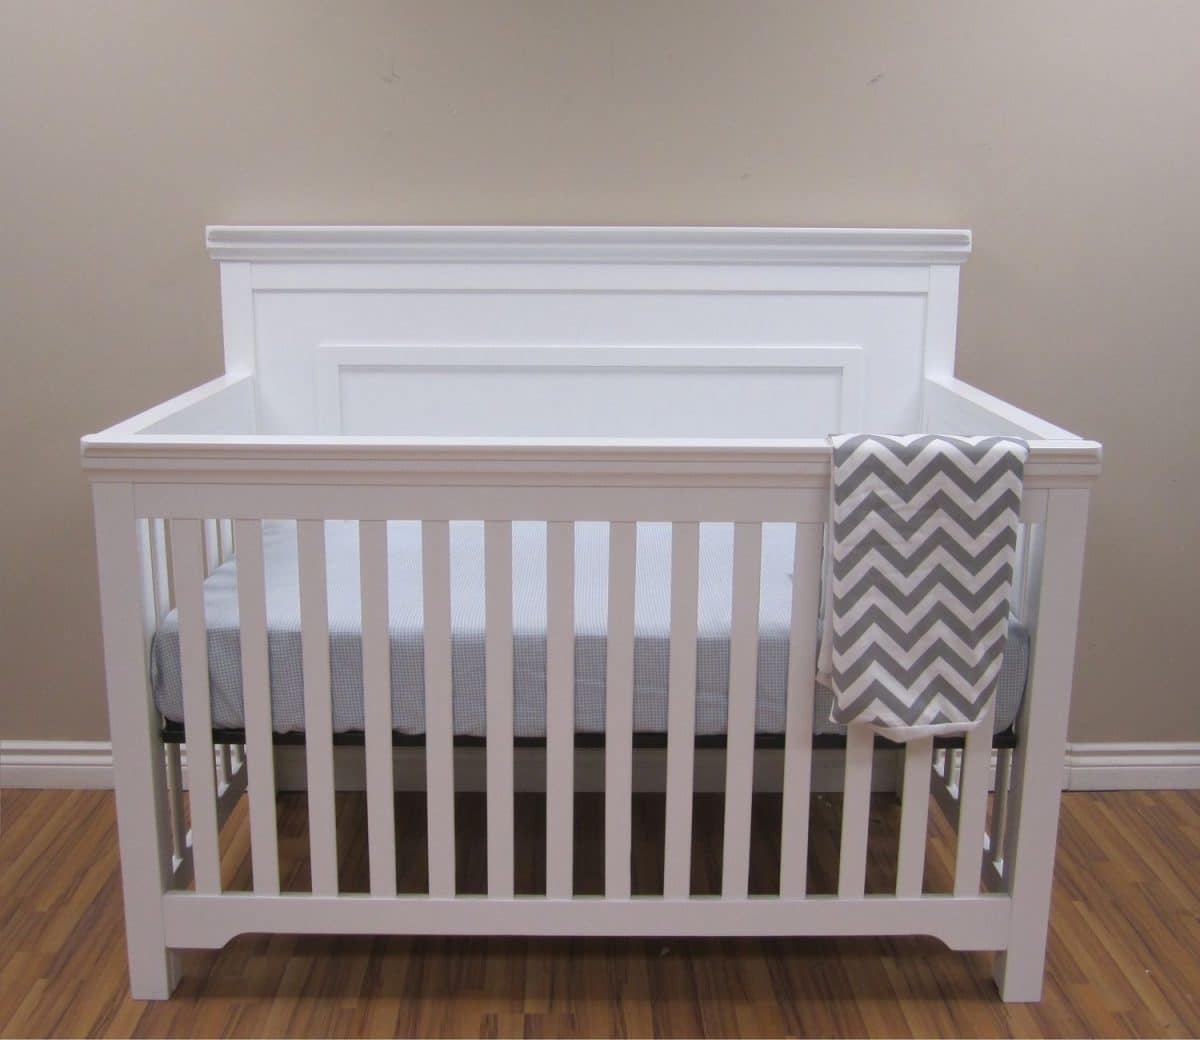 The 10 Best Baby Cribs To Buy 2019 Littleonemag